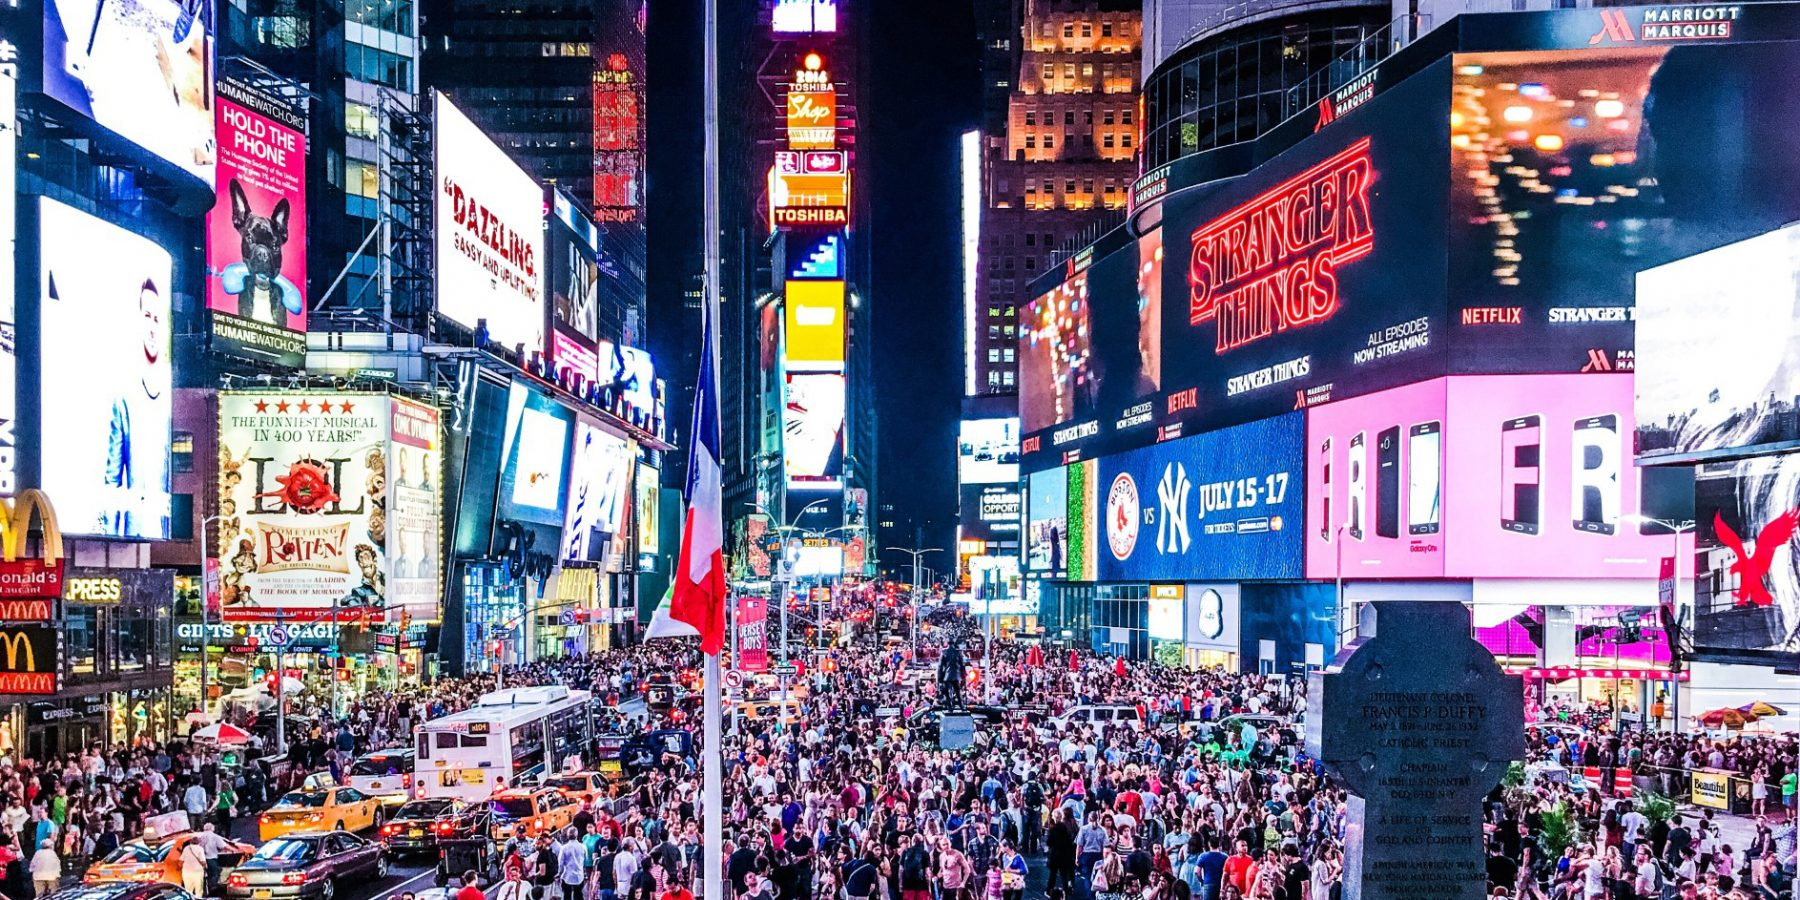 5 Tips for Spending New Year's Eve in Times Square